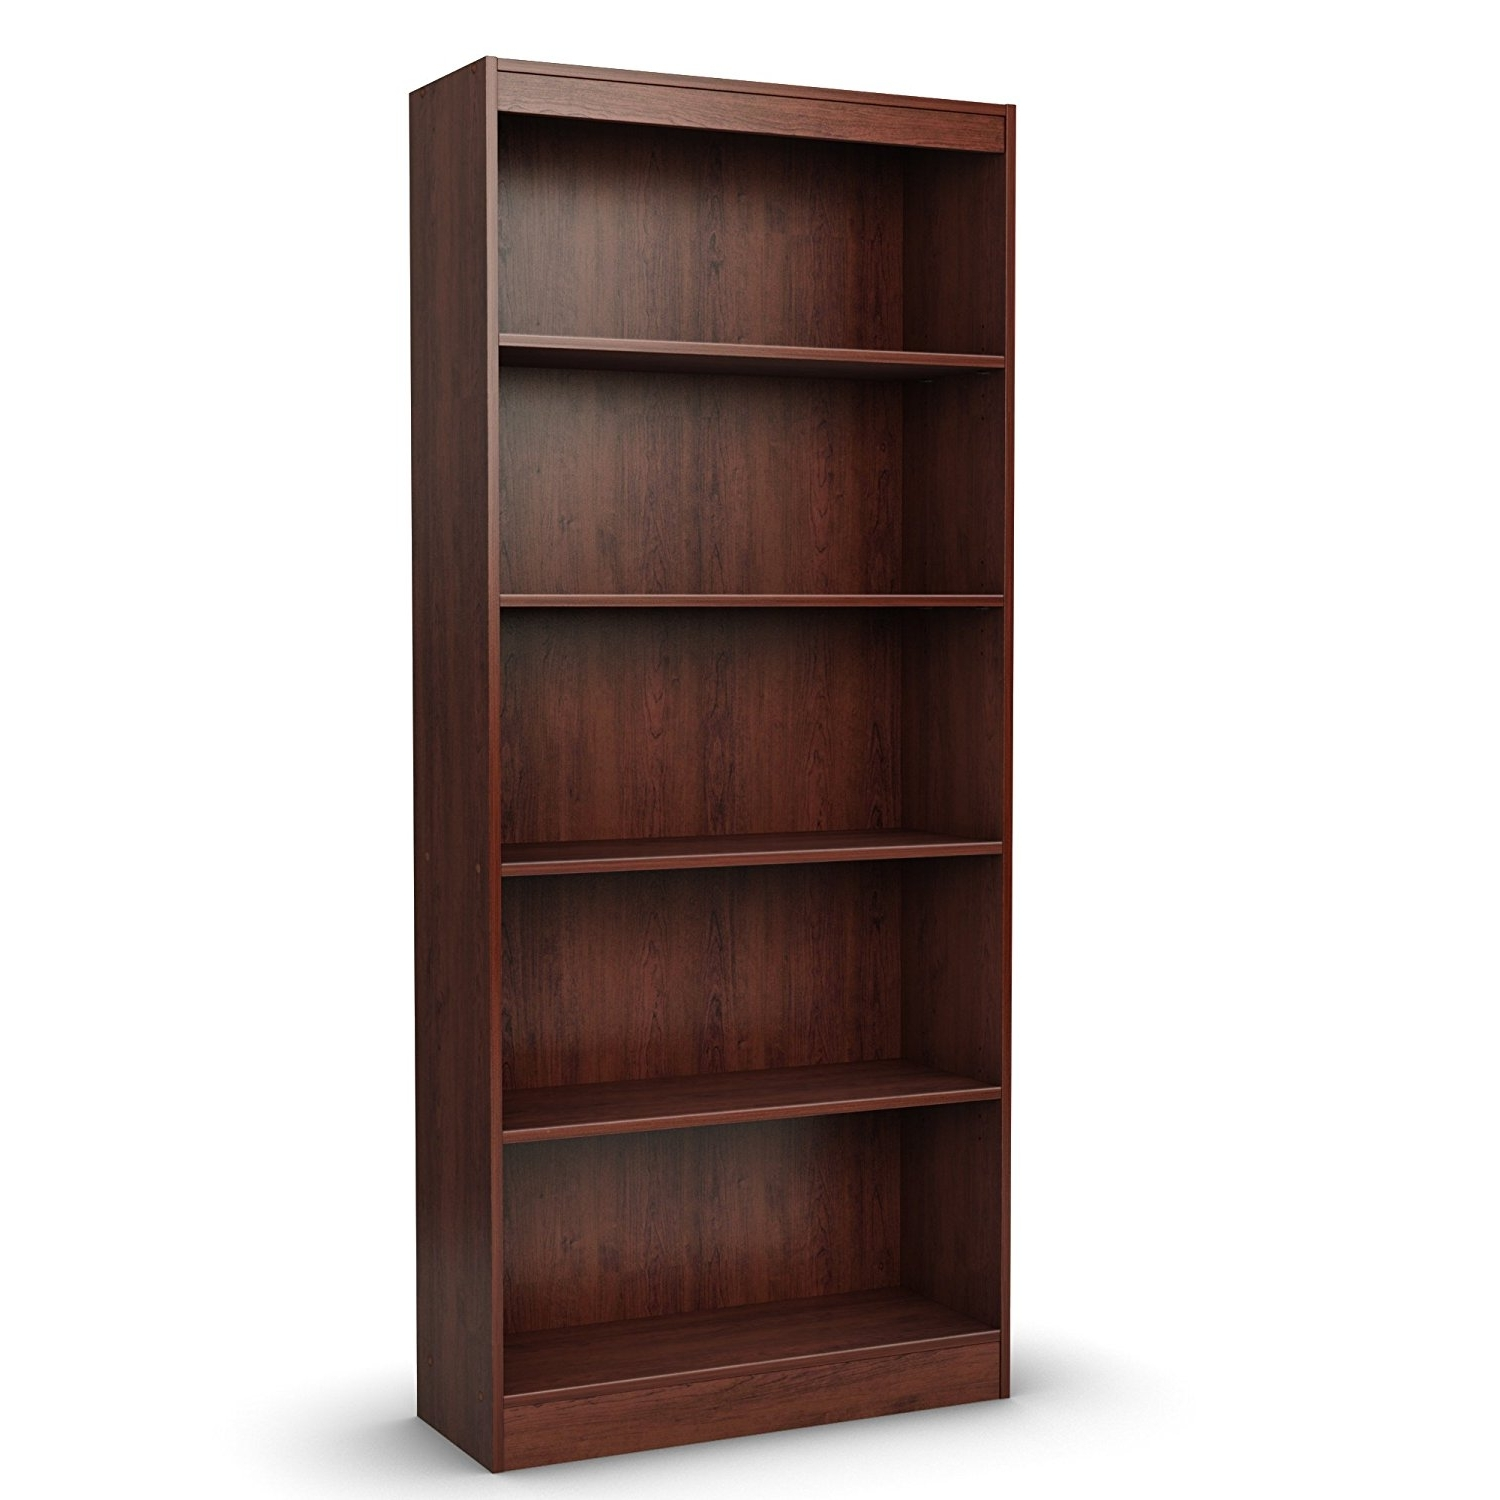 Favorite South Shore 5 Shelf Bookcases Within Amazon: South Shore Axess Collection 5 Shelf Bookcase, Royal (View 3 of 15)